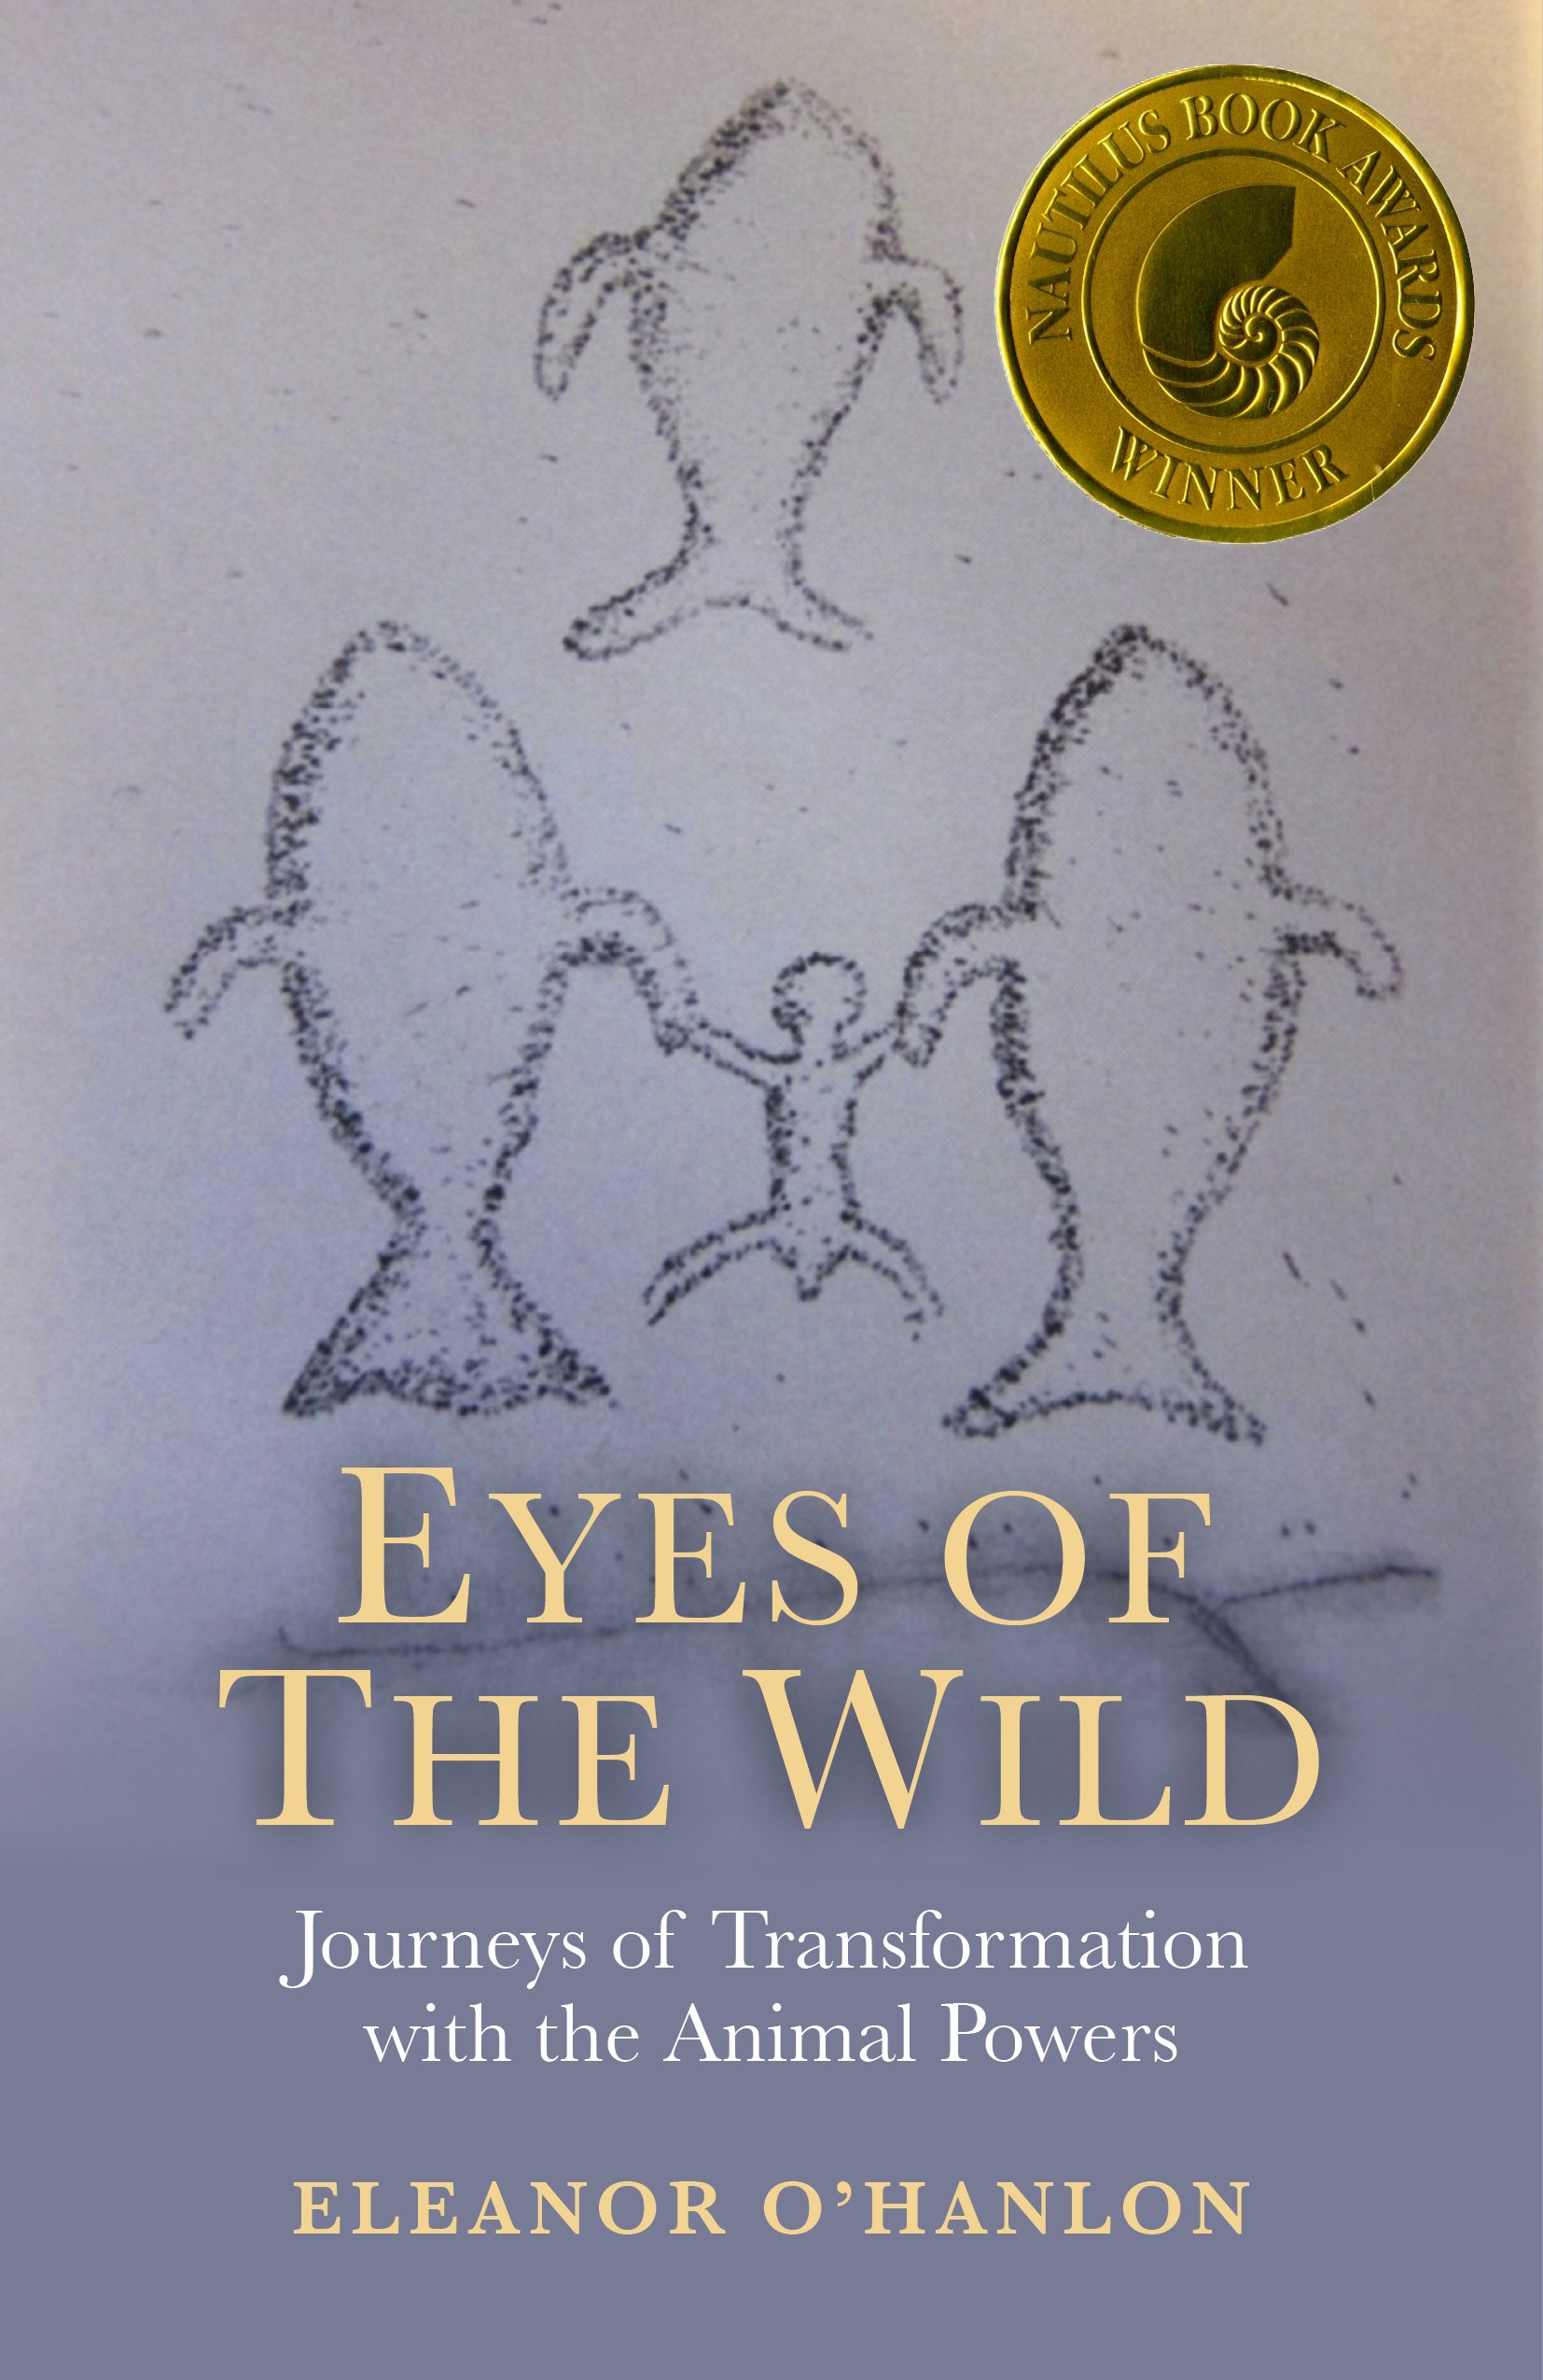 Eyes of the Wild: Journeys of Transformation with the Animal Powers PDF